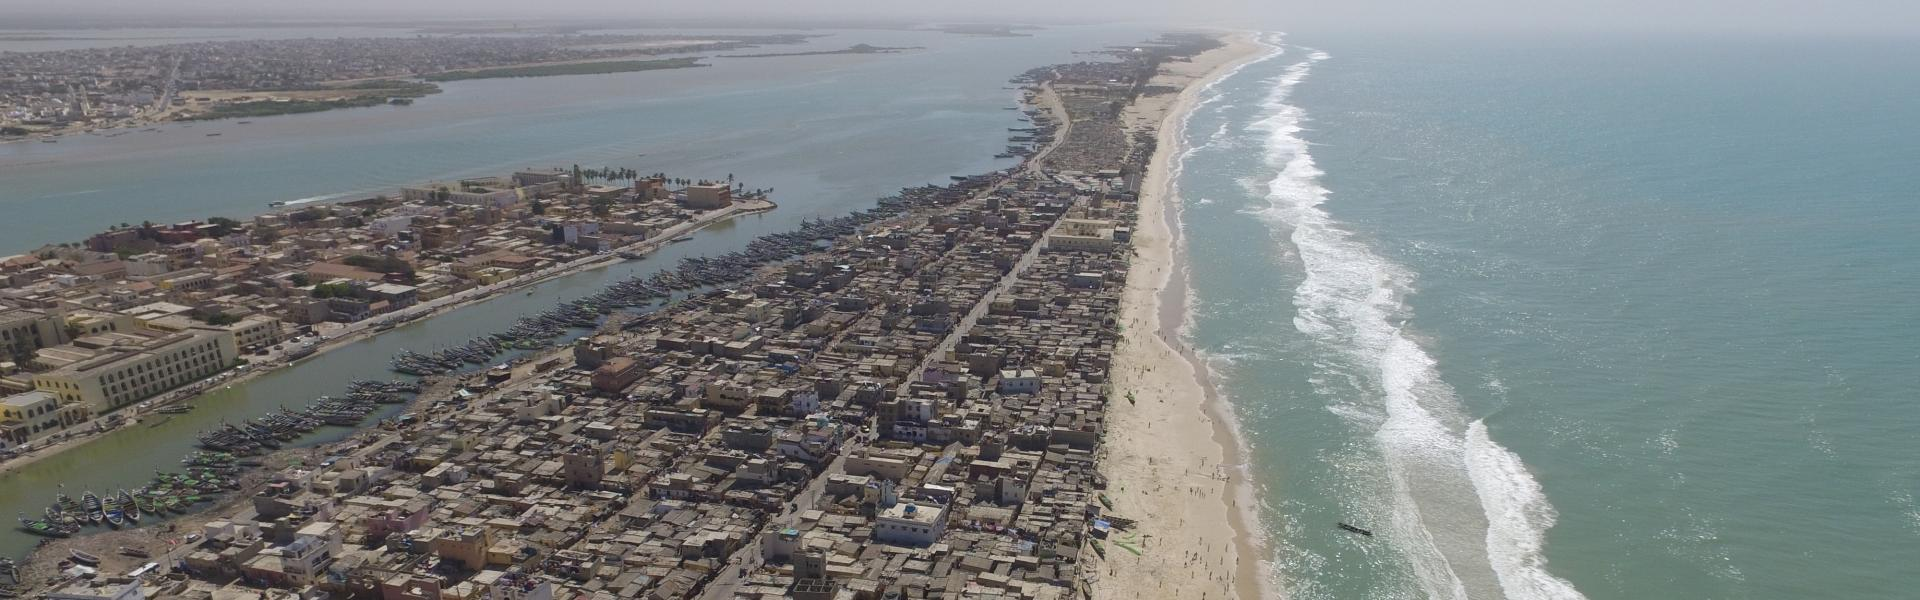 Aerial view of Saint-Louis, Senegal